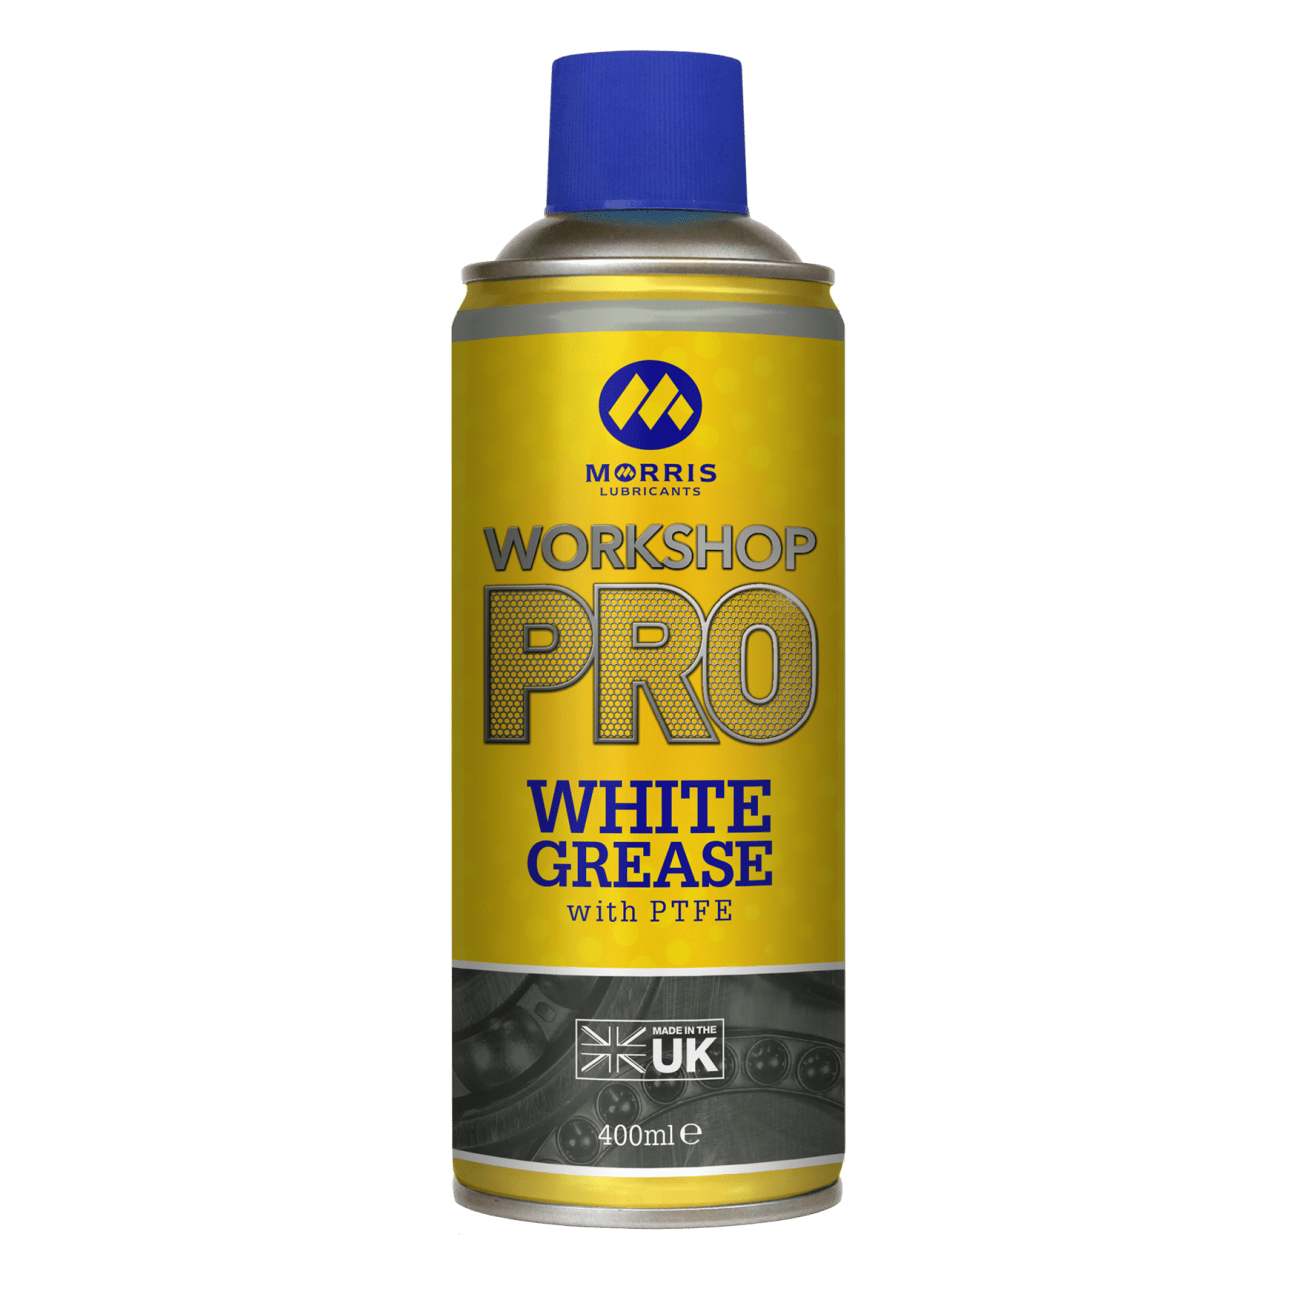 Workshop Pro White Spray Grease with PTFE